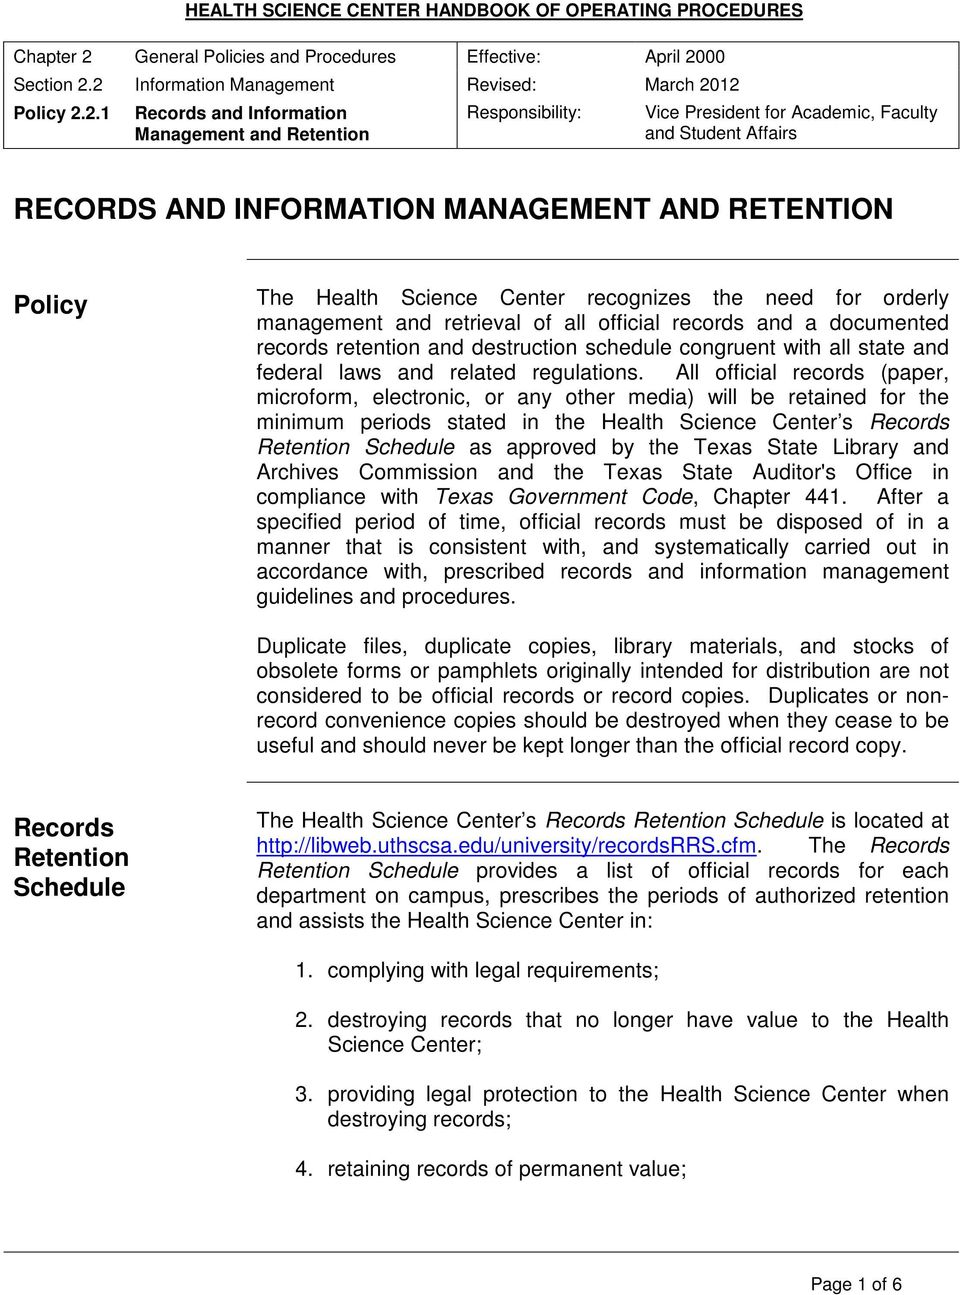 All official records (paper, microform, electronic, or any other media) will be retained for the minimum periods stated in the Health Science Center s Records Retention Schedule as approved by the